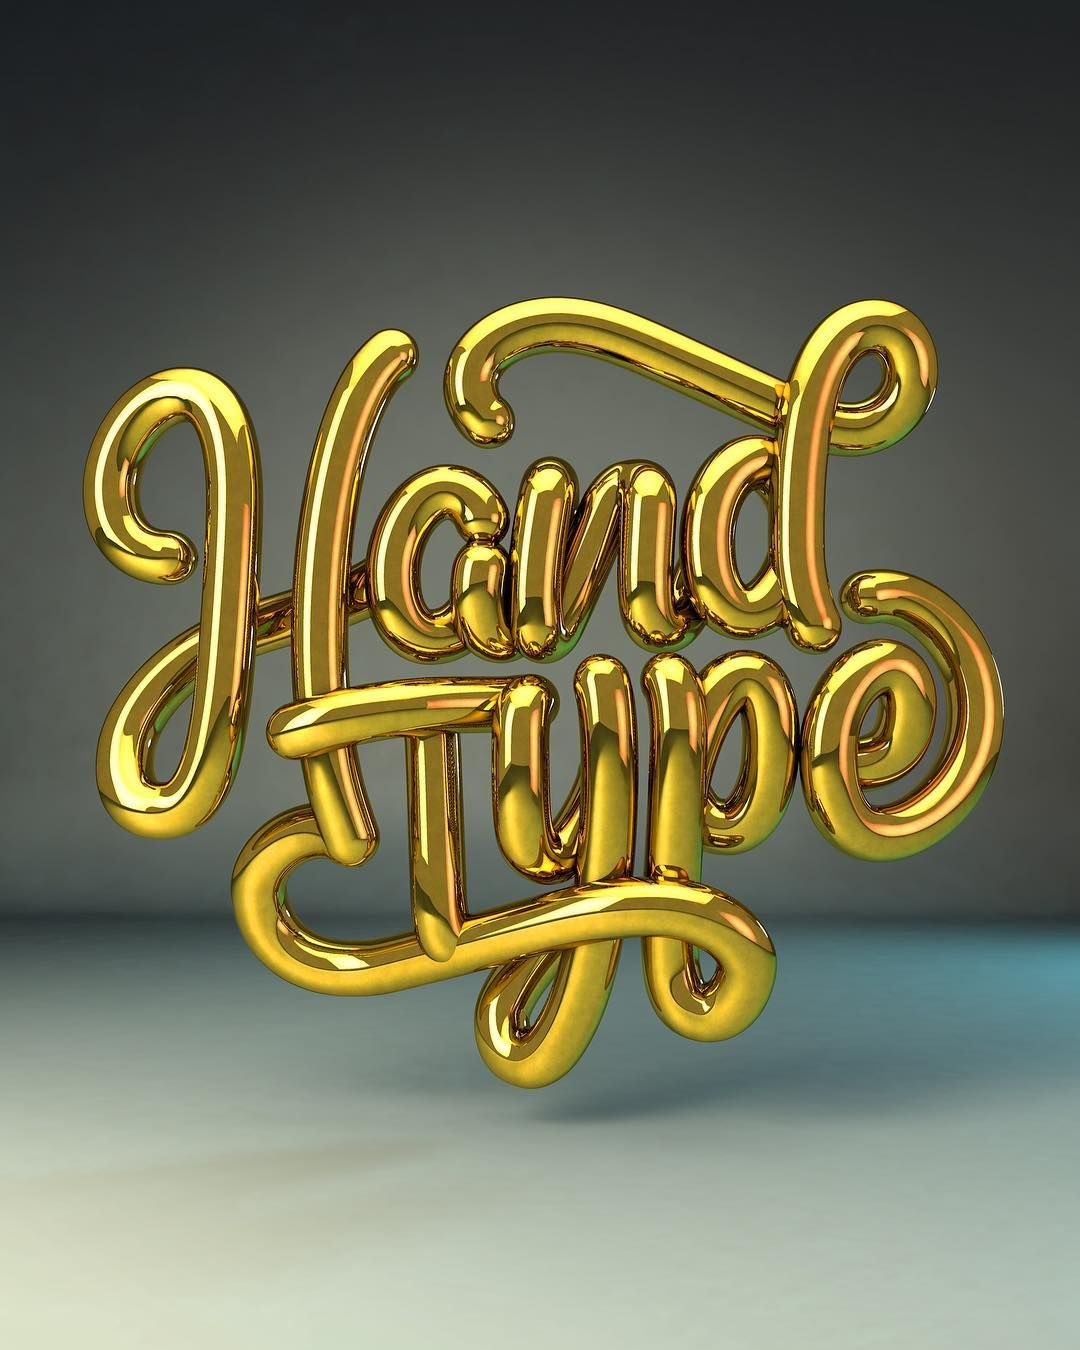 Hand Type / Hand Lettering / Lettering / Gold / Metallic / 3D Lettering by Zane Ruyssenaers